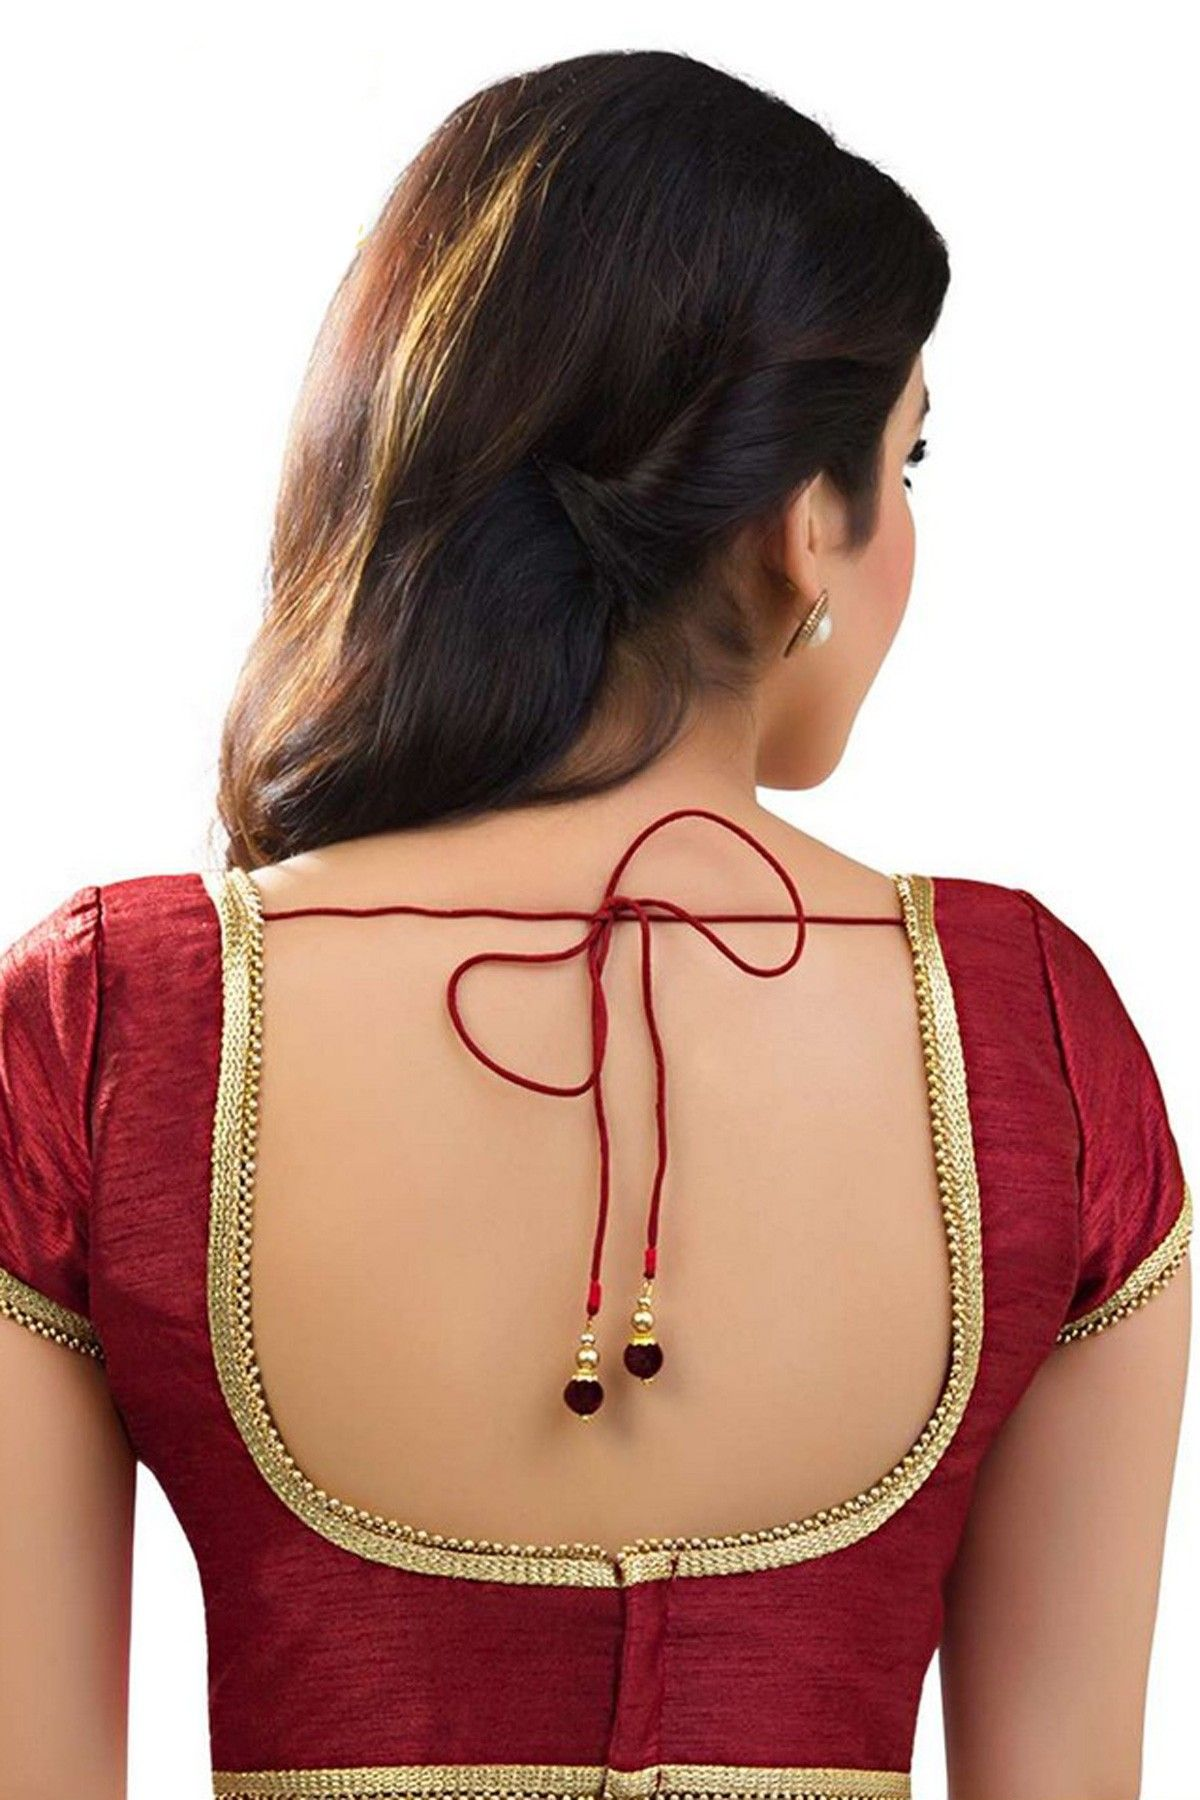 Blouse designs saree blouse back designs blouses neck designs 30 jpg -  Maroon Raw Silk Designer Blouse With Trendy Back Deep U Neck Bl749